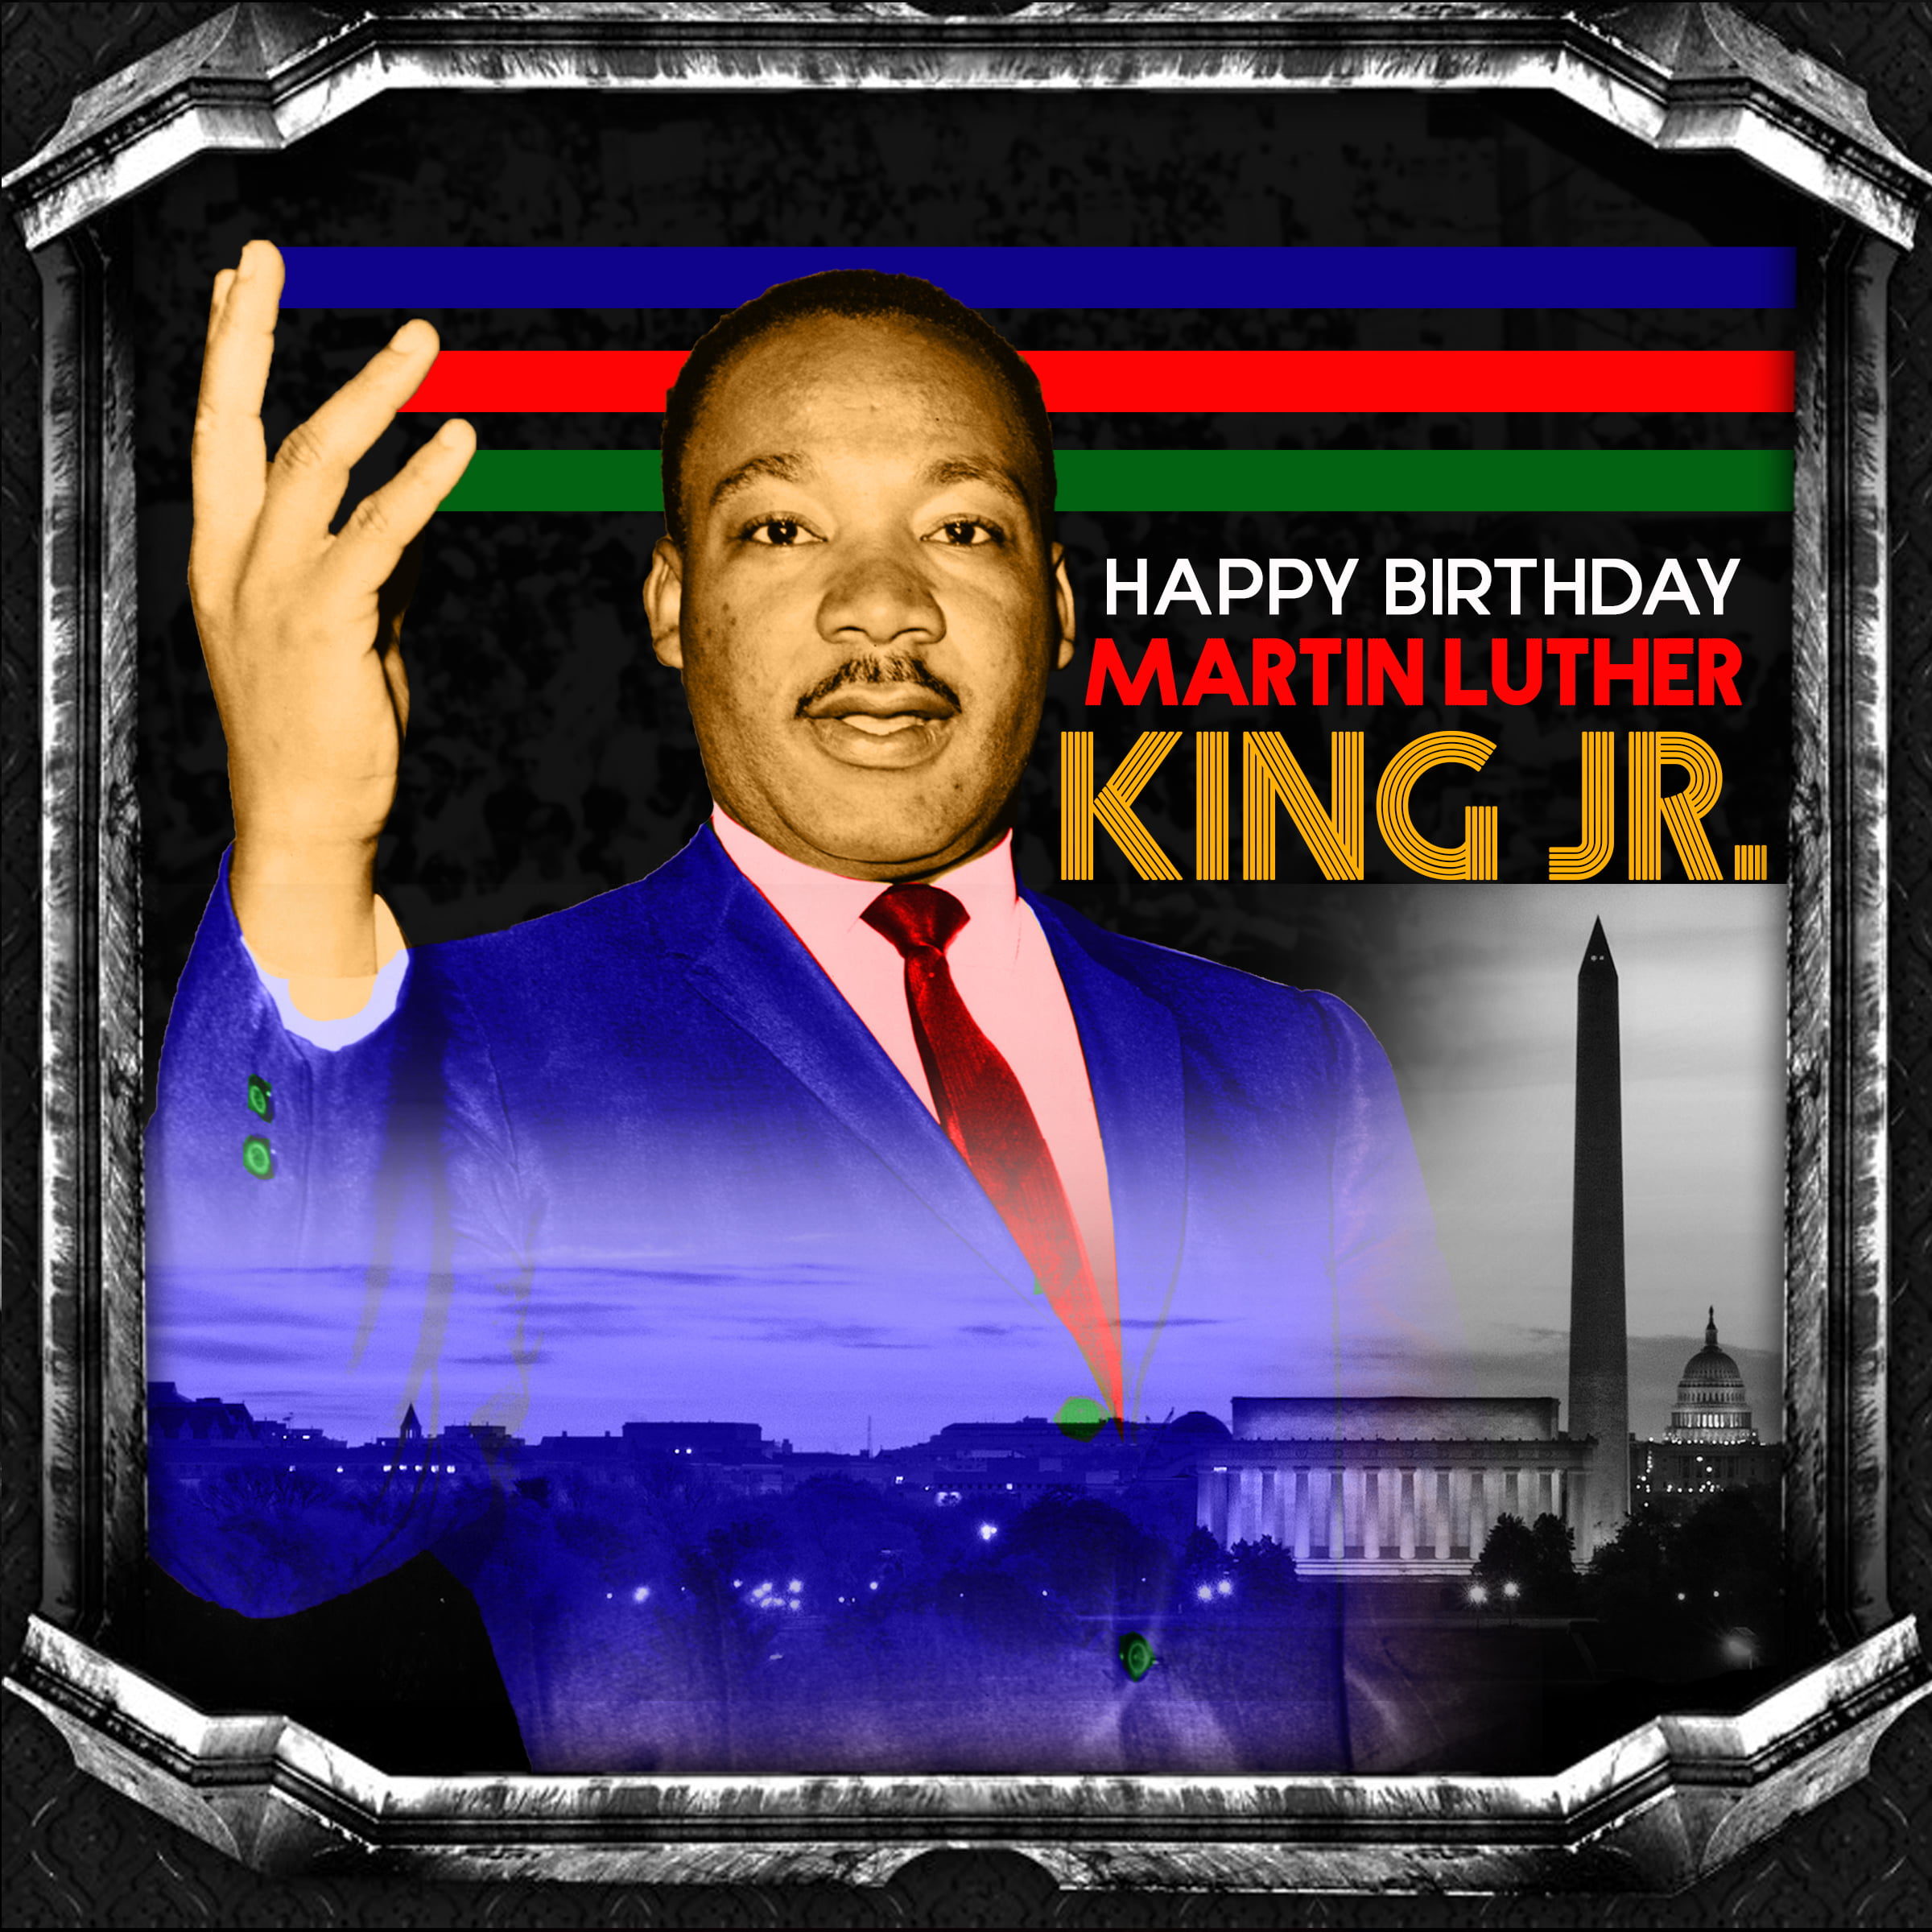 MLK JR DESIGN